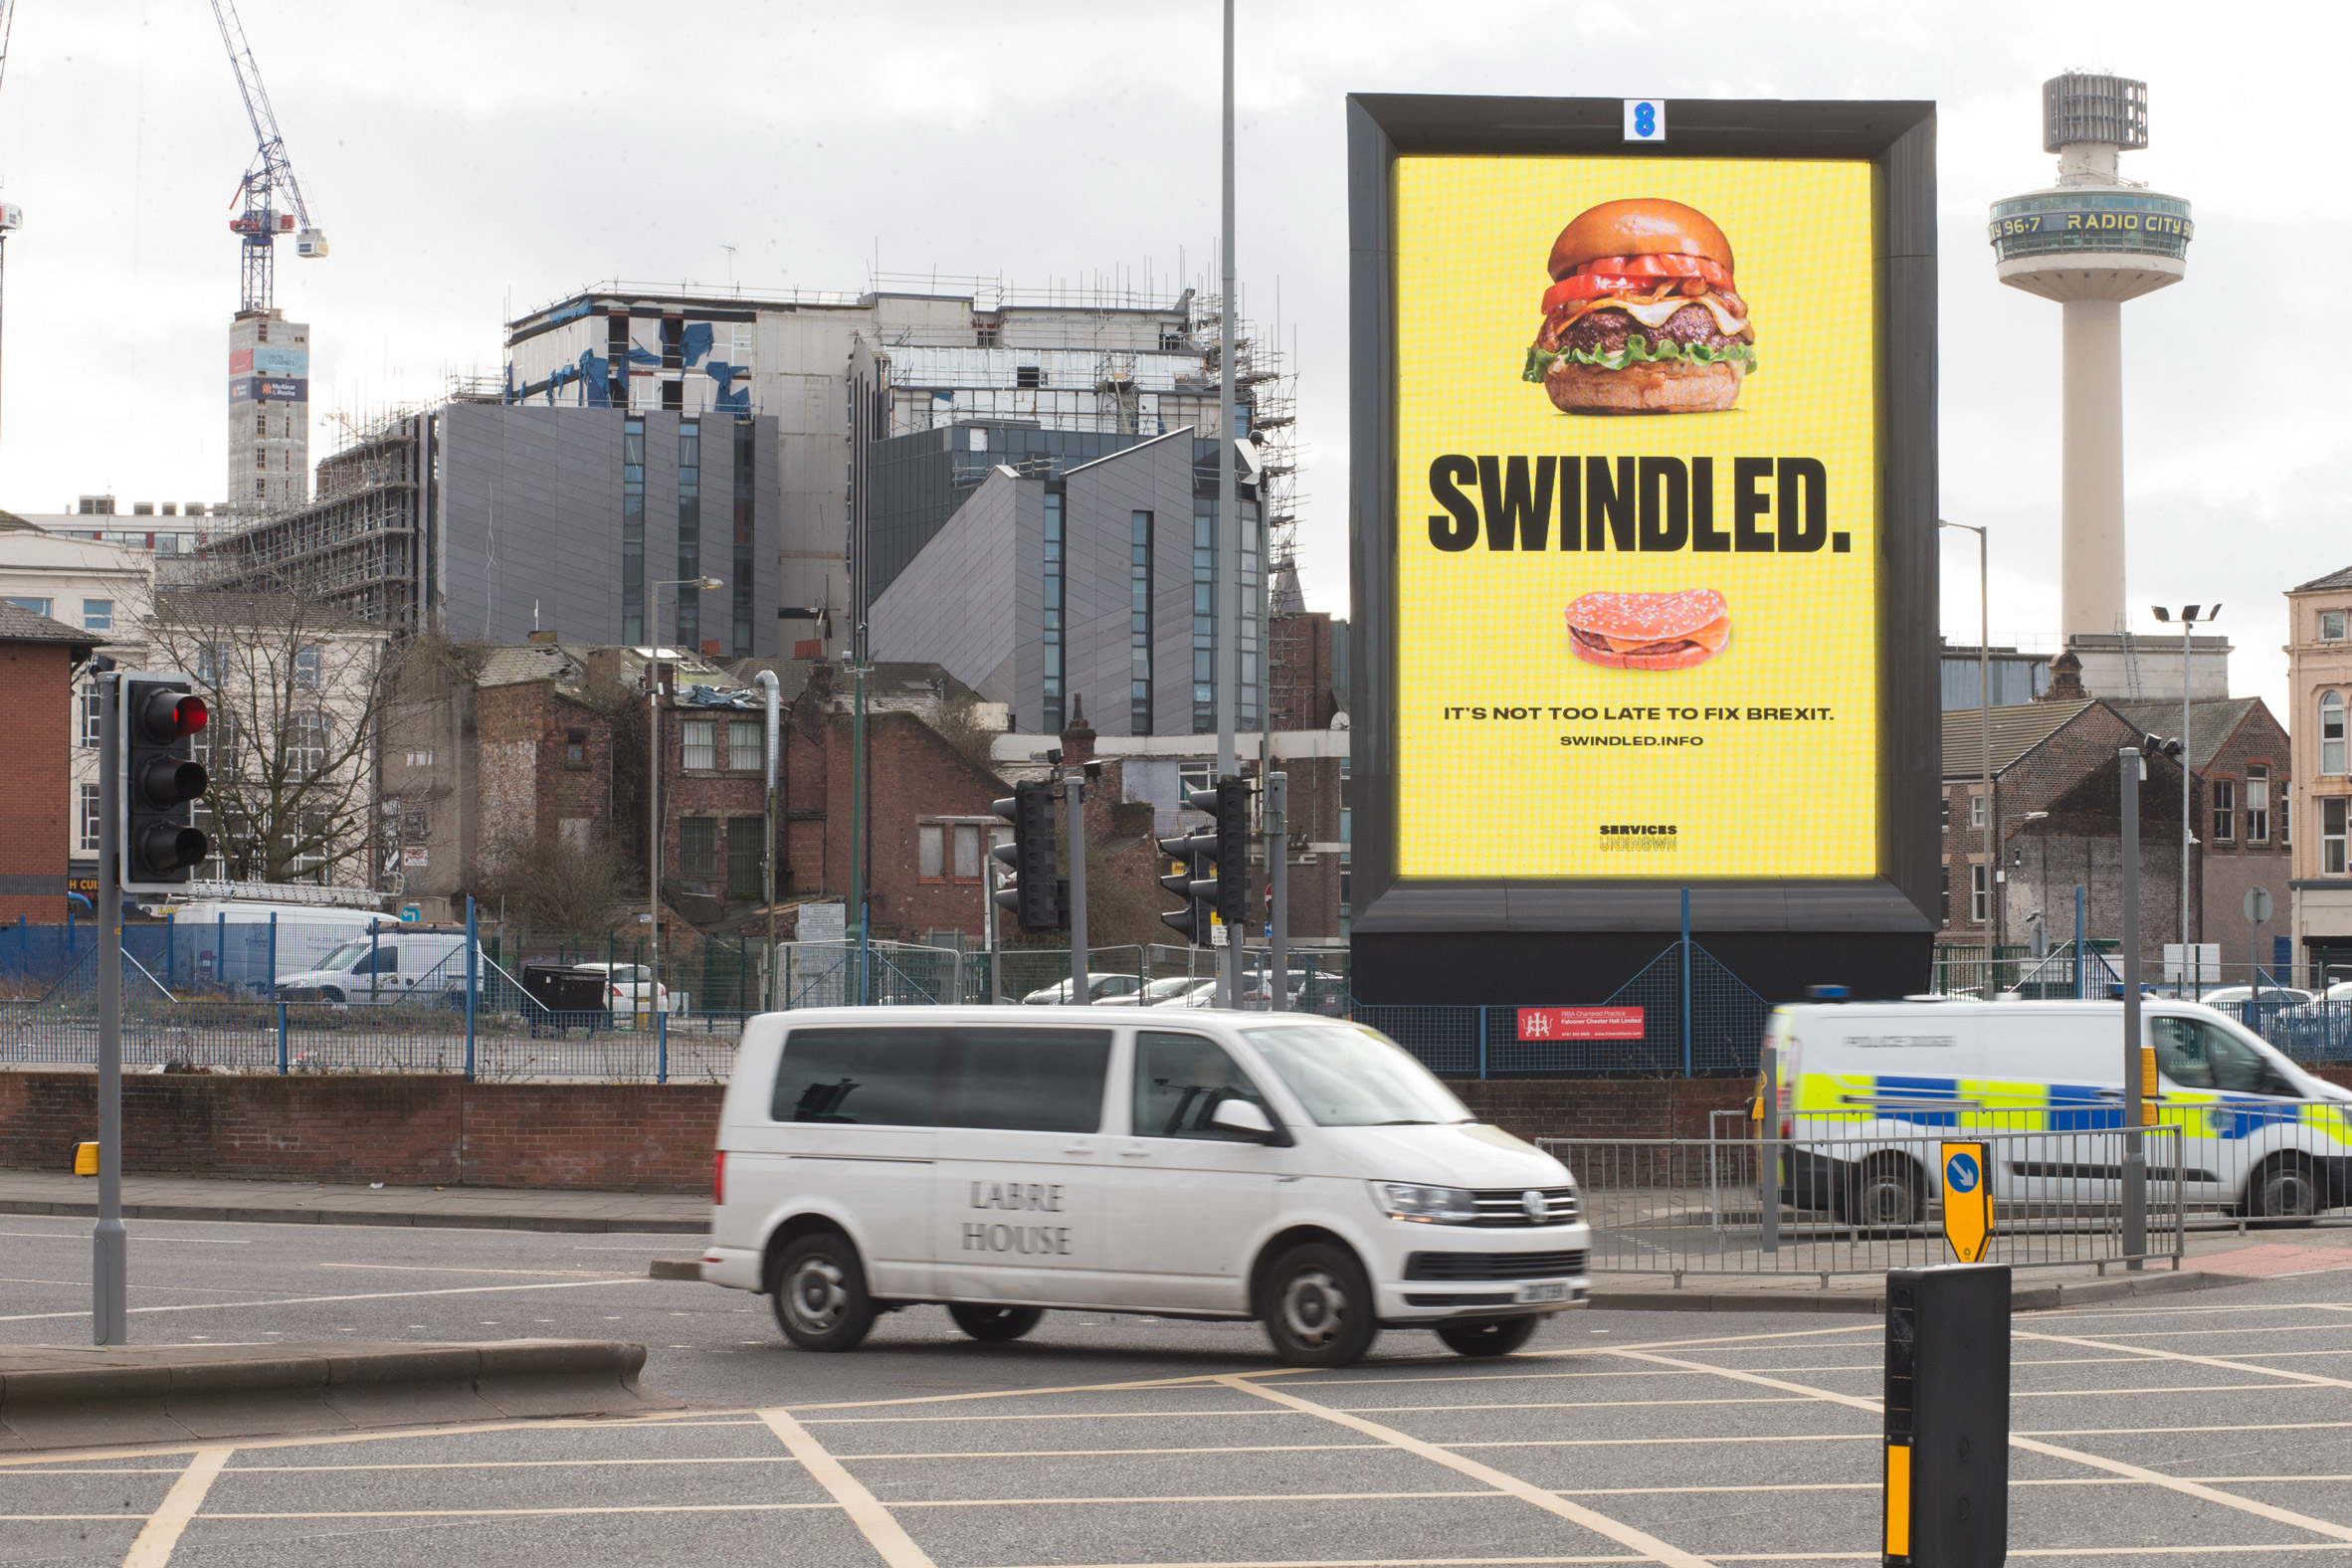 Anti-Brexit billboard campaign launched across the UK